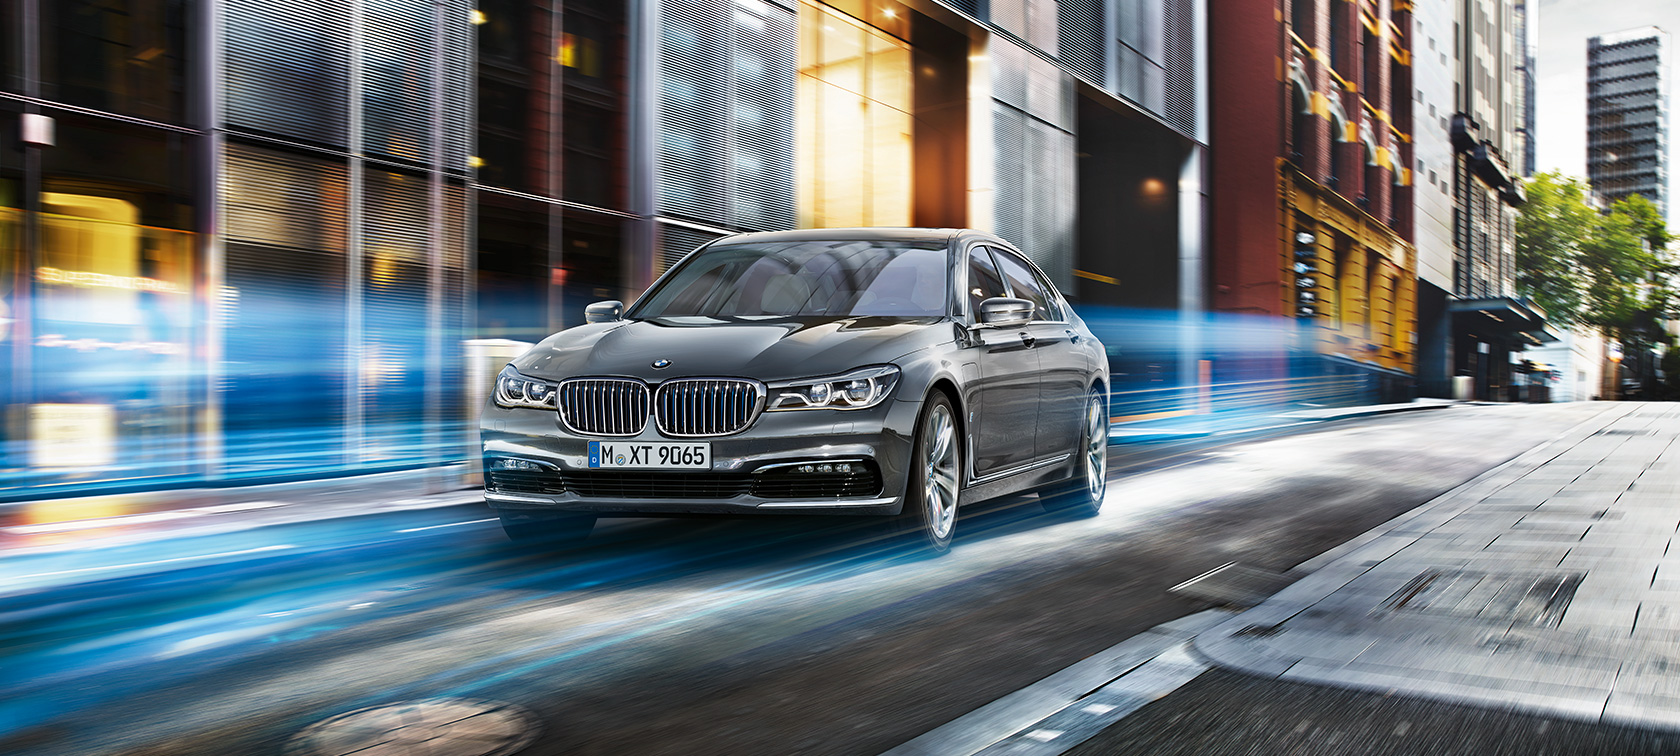 The BMW 7 Series with eDrive